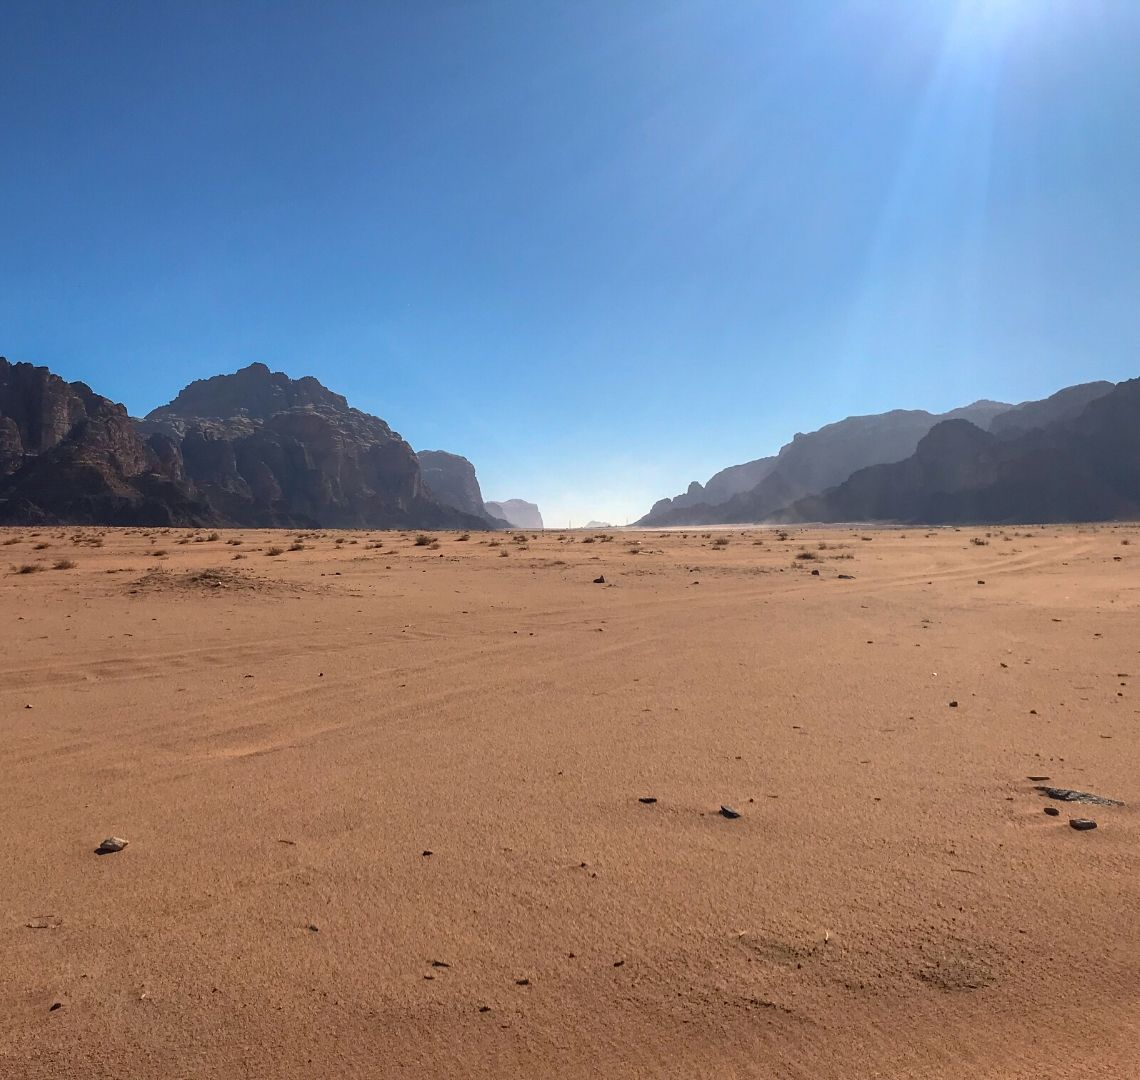 Things To Do In Jordan - Wadi Rum - a sun flare to the top right in a clear blue sky. Craggy rocks can be seen in the distance and between them some haze. In the foreground is an expanse of orange sand.